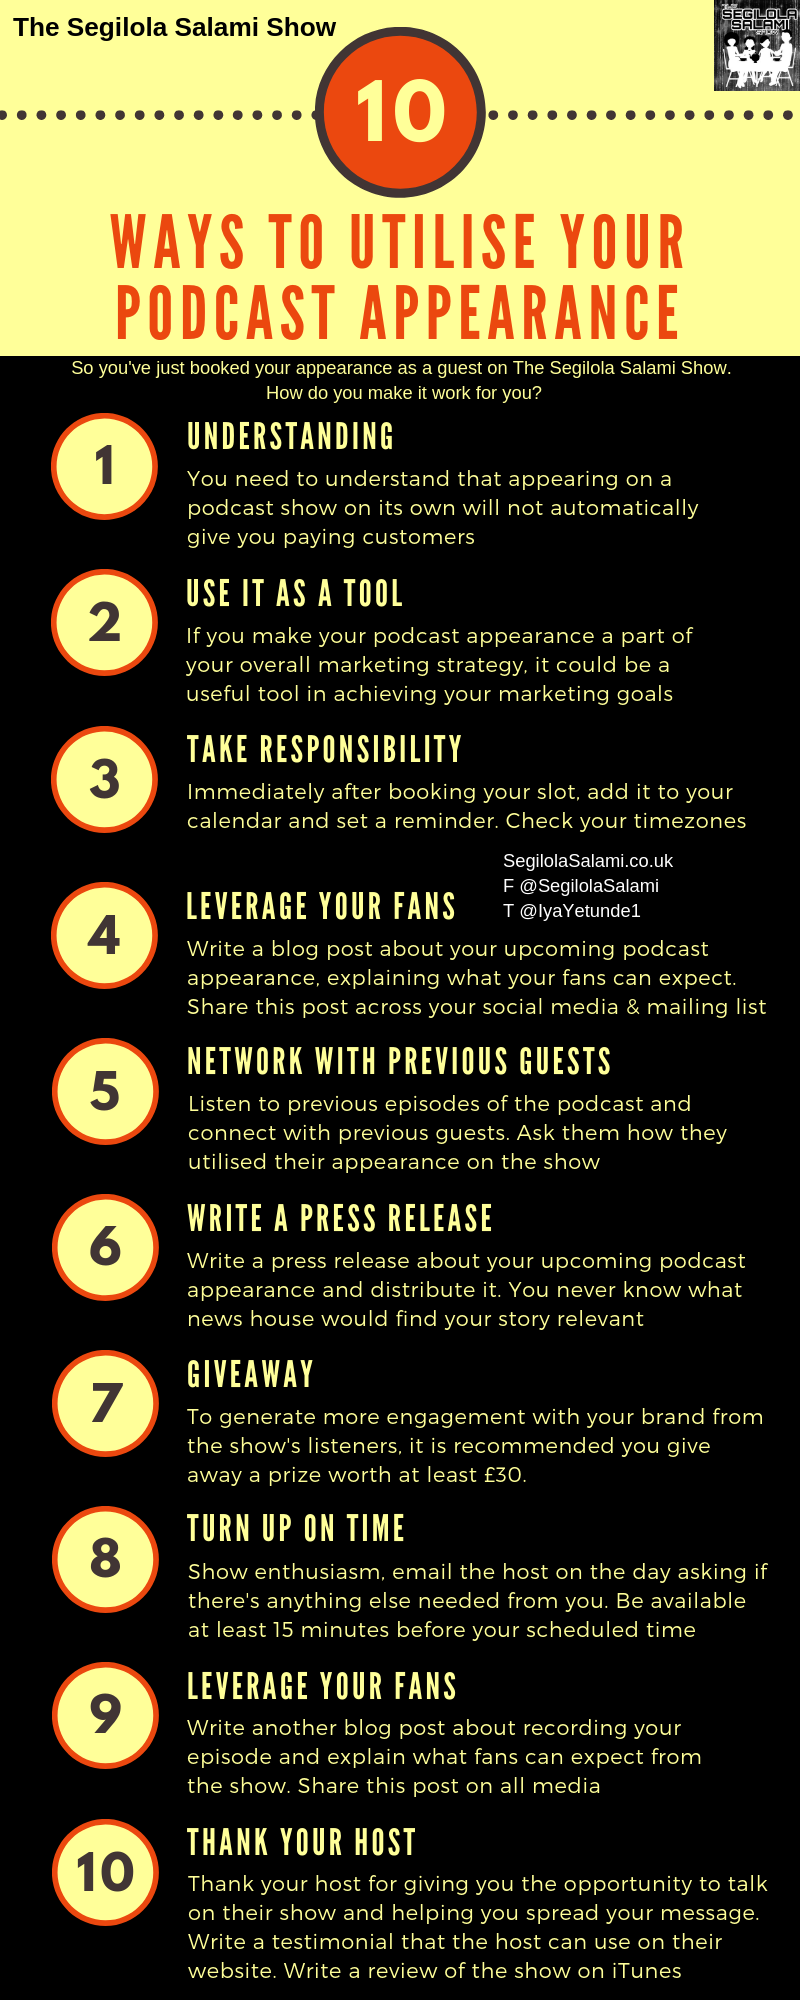 INFOGRAPHIC: 10 Ways to Utilise your Podcast Appearance